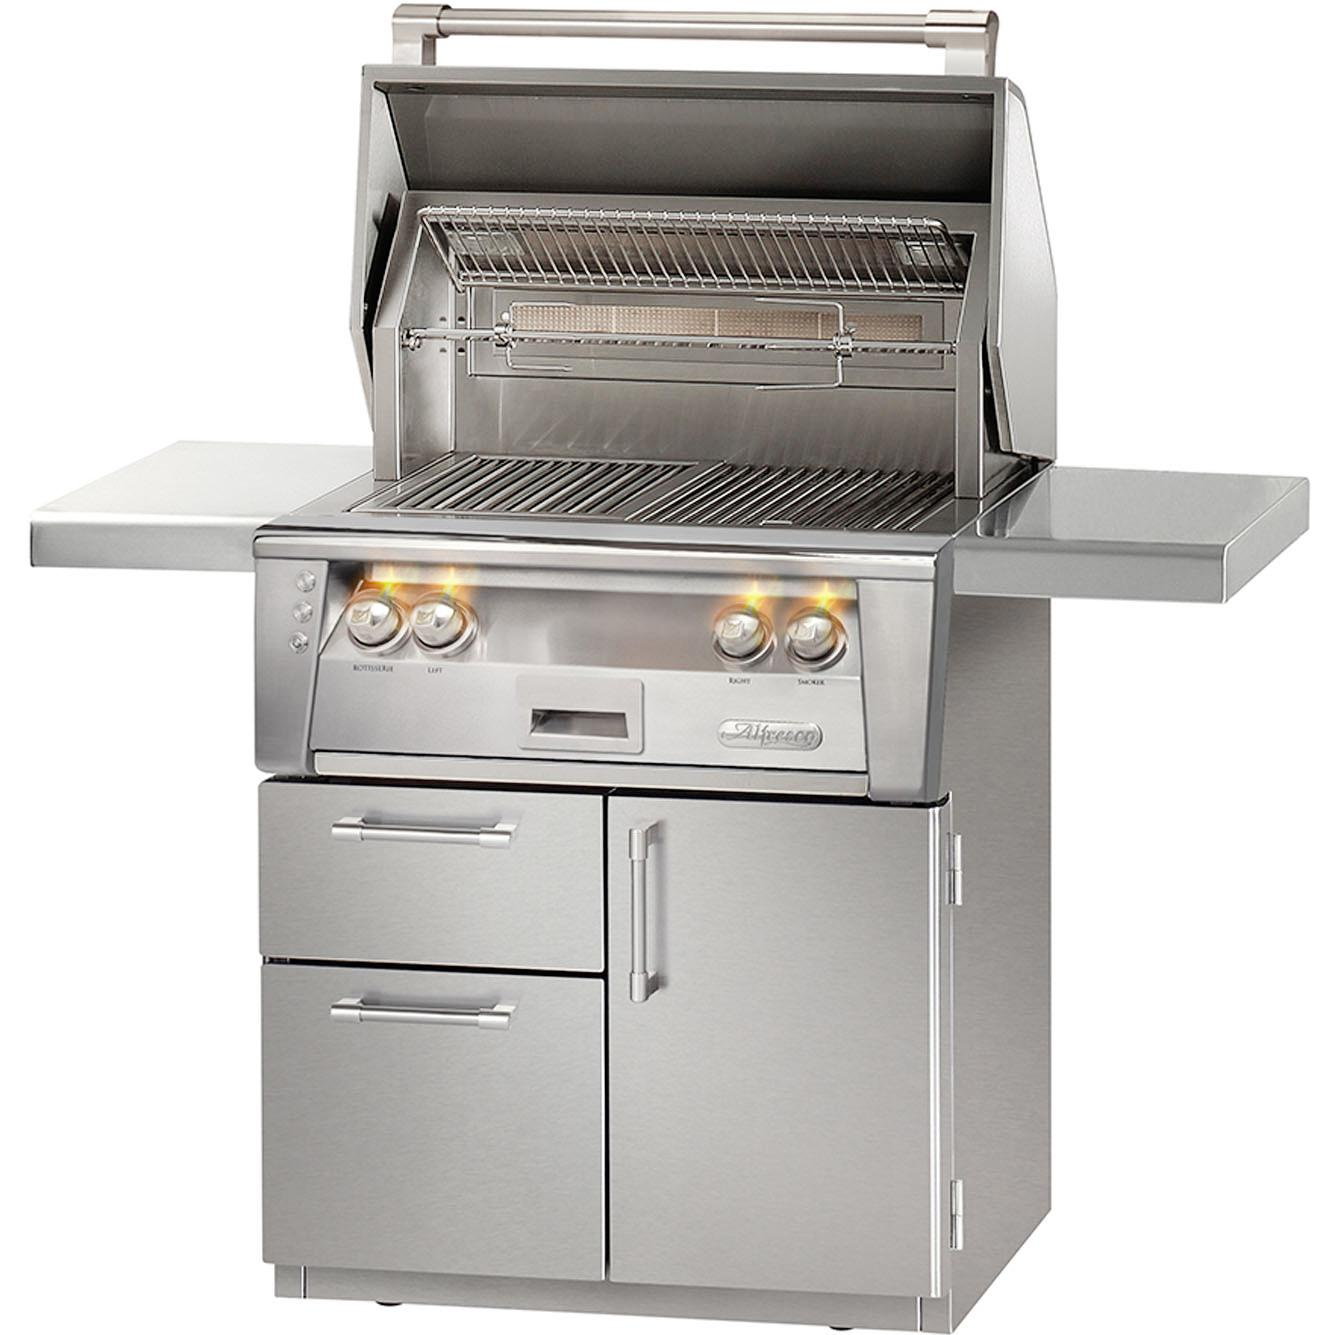 Alfresco LXE 30-Inch Propane Gas Grill On Deluxe Cart With Rotisserie - ALXE-30CD-LP 2911834